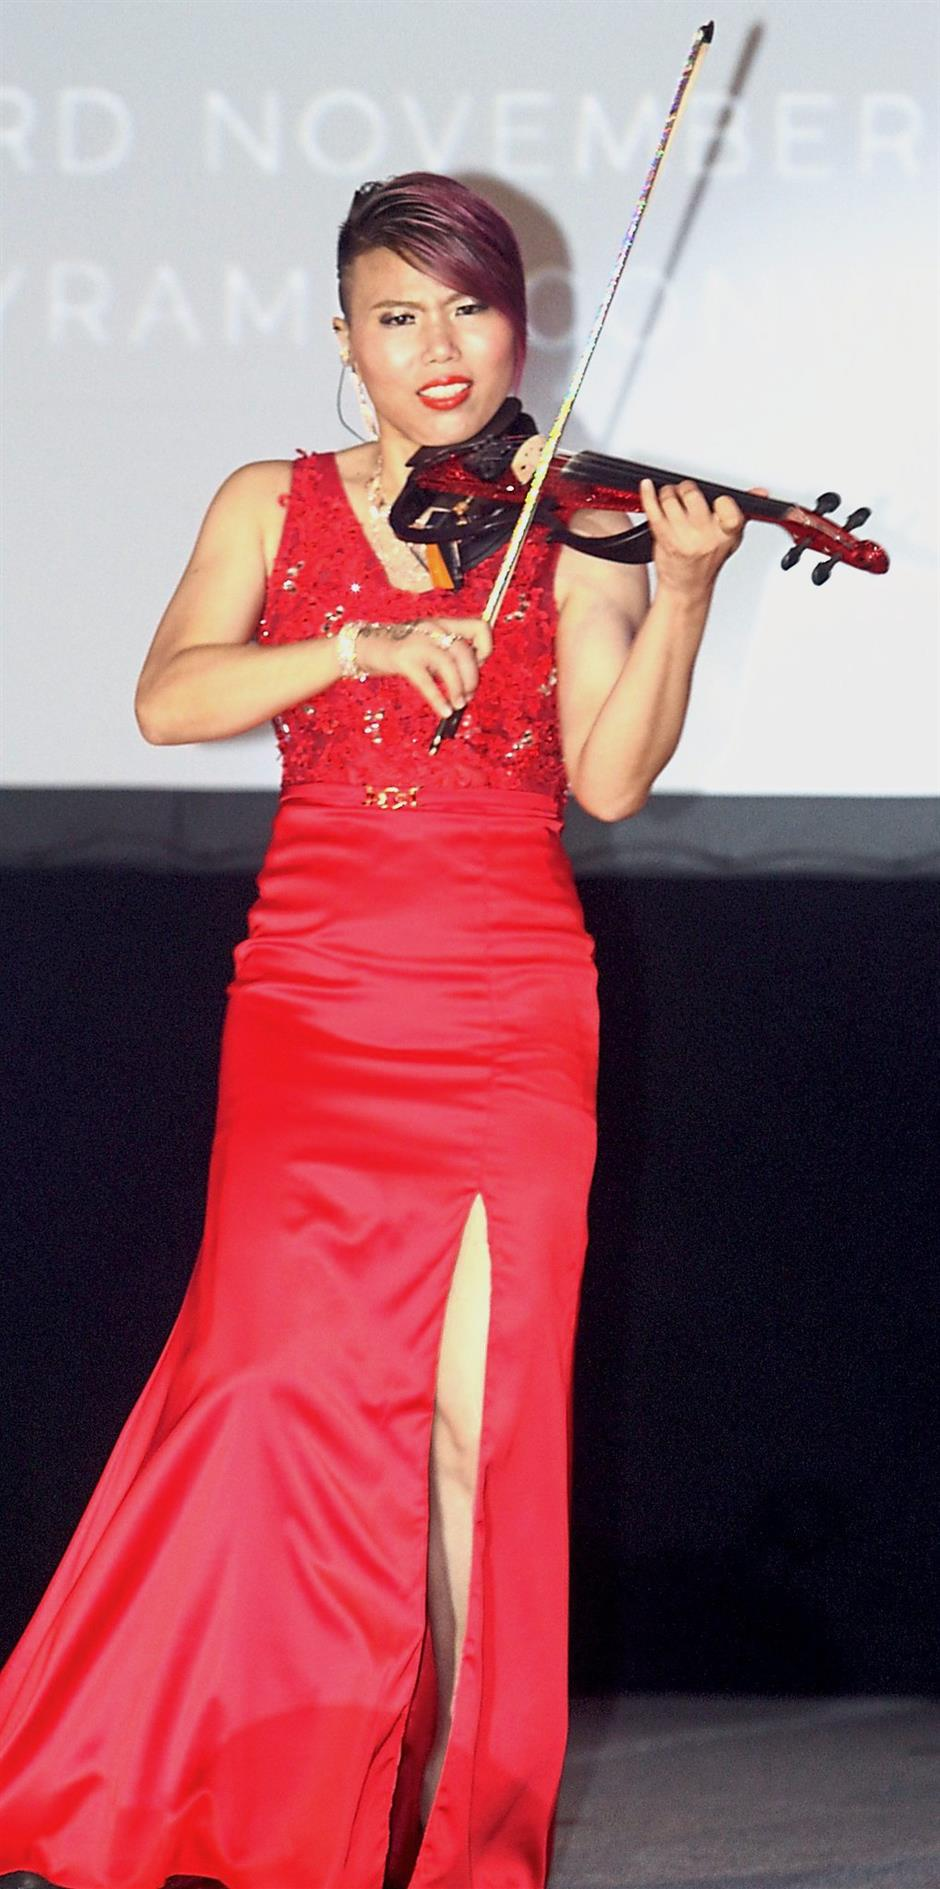 Entertainment for the evening included a solo violin performance.